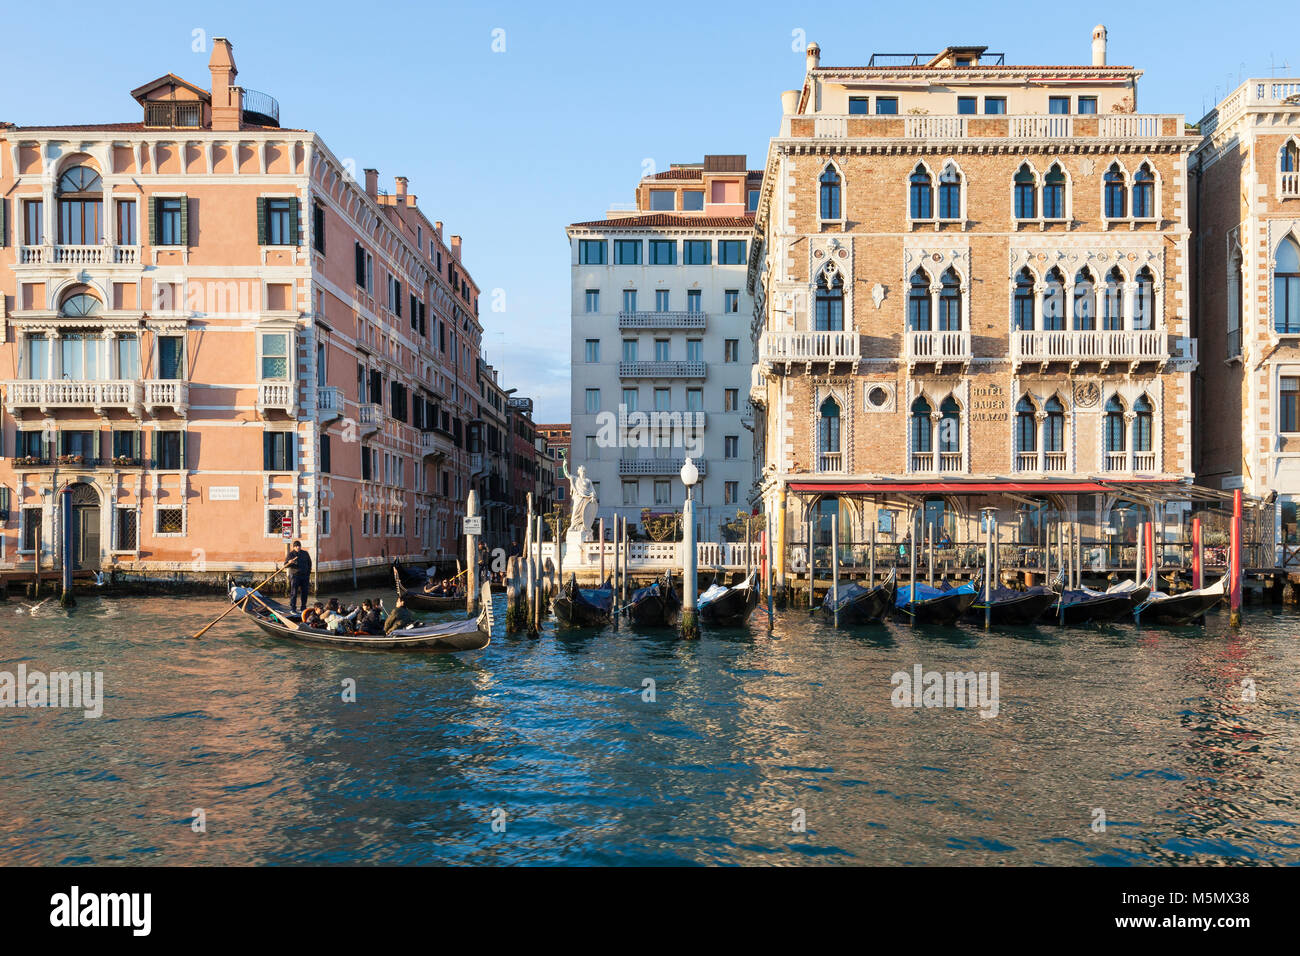 Tourists enjoying a gondola ride on the Grand Canal at sunset, Venice, Veneto, Italy passing the Hotel Bauer Palazzo - Stock Image